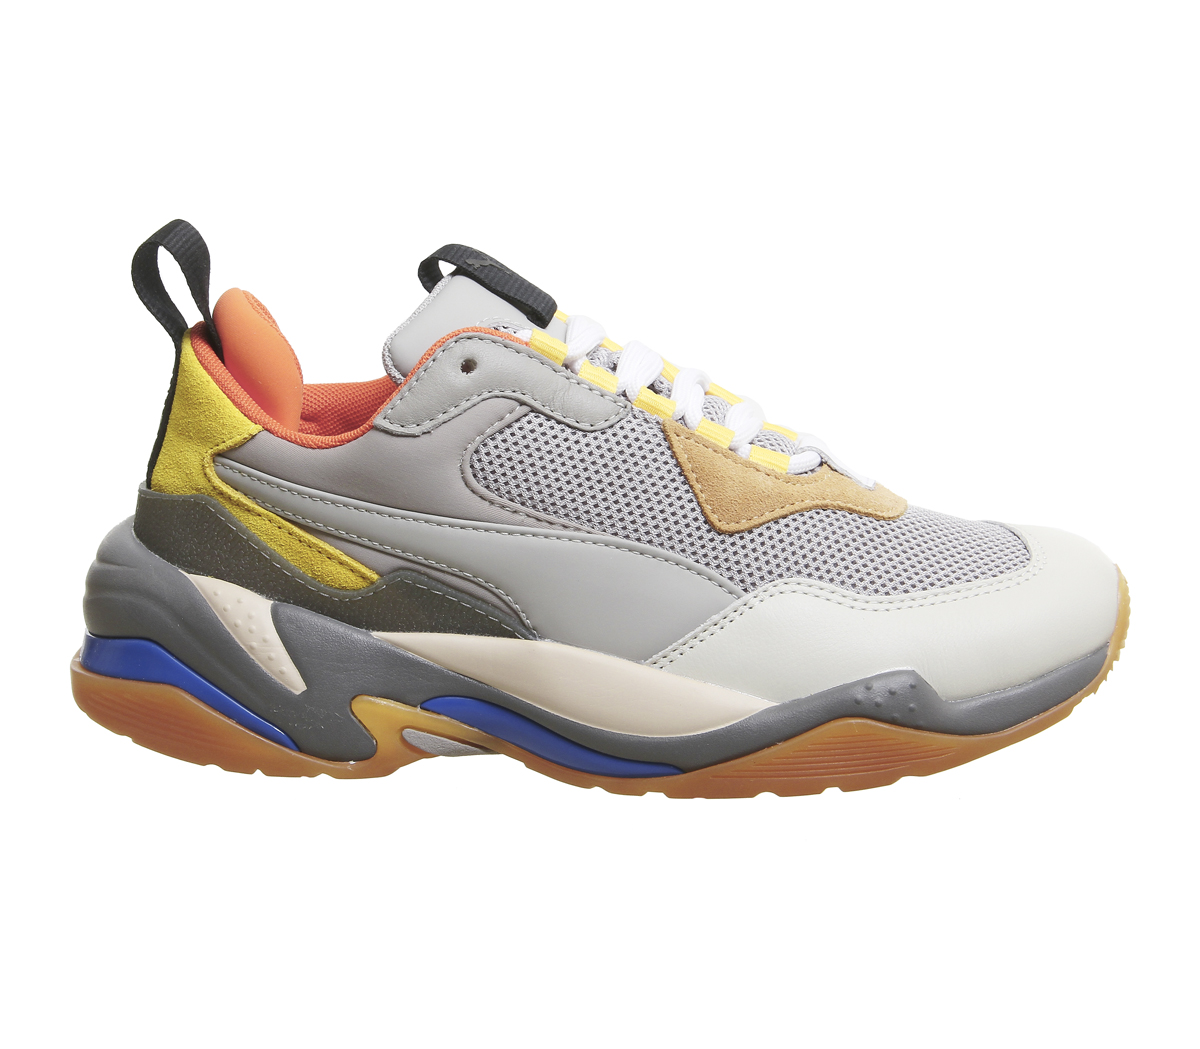 Sentinel Mens Puma Thunder Spectra Trainers Puma White Drizzle Puma Black  Trainers Shoes 9a73b860a